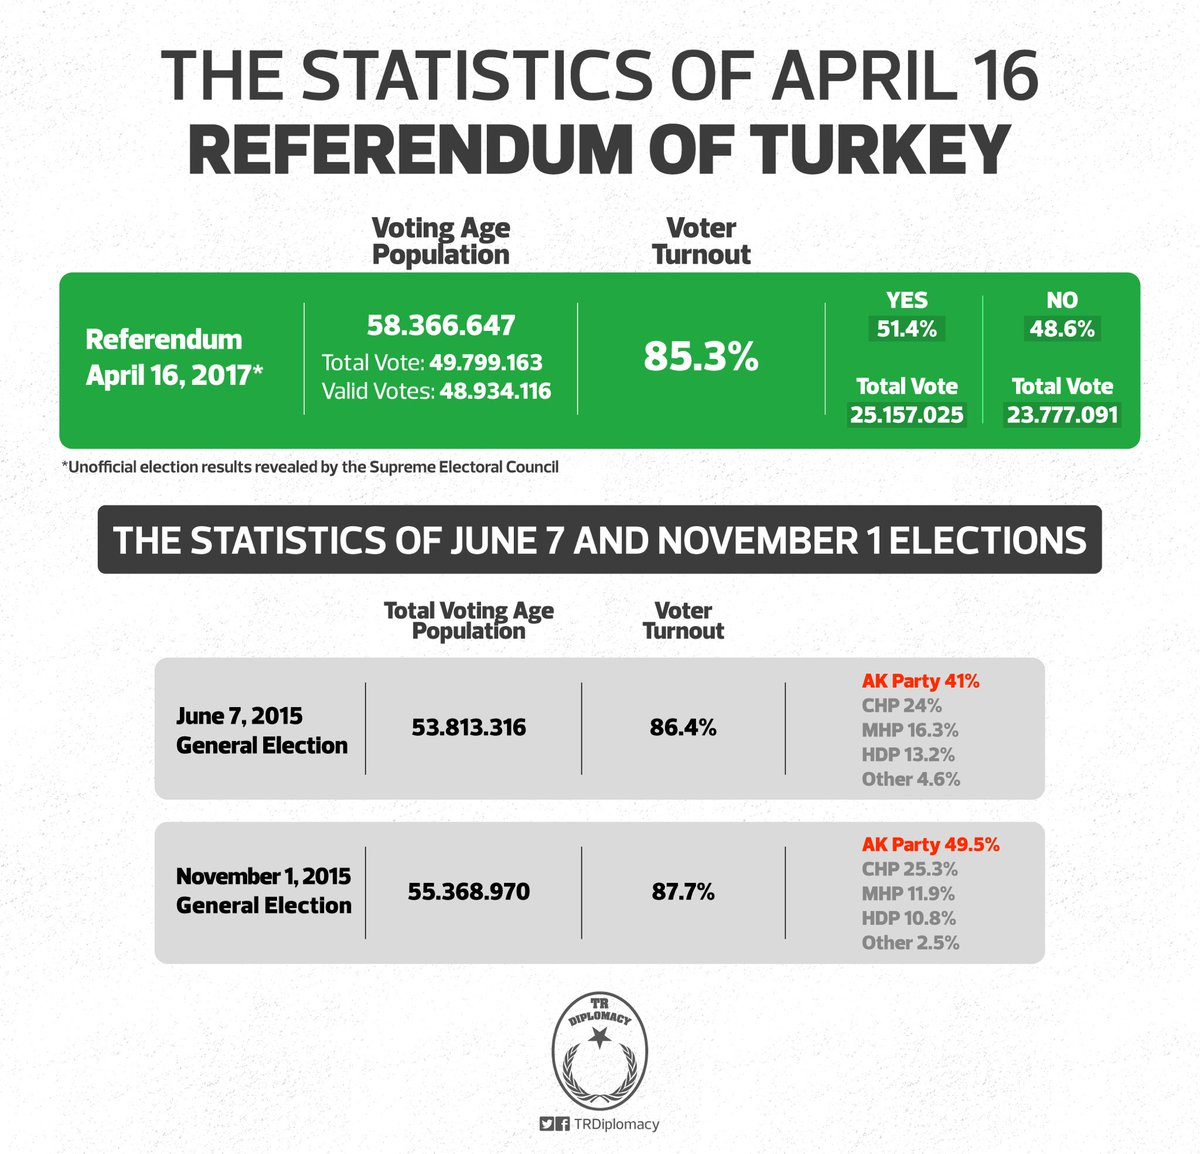 Turkey's Democracy Victory: April 16 Referendum and Voter Turnout